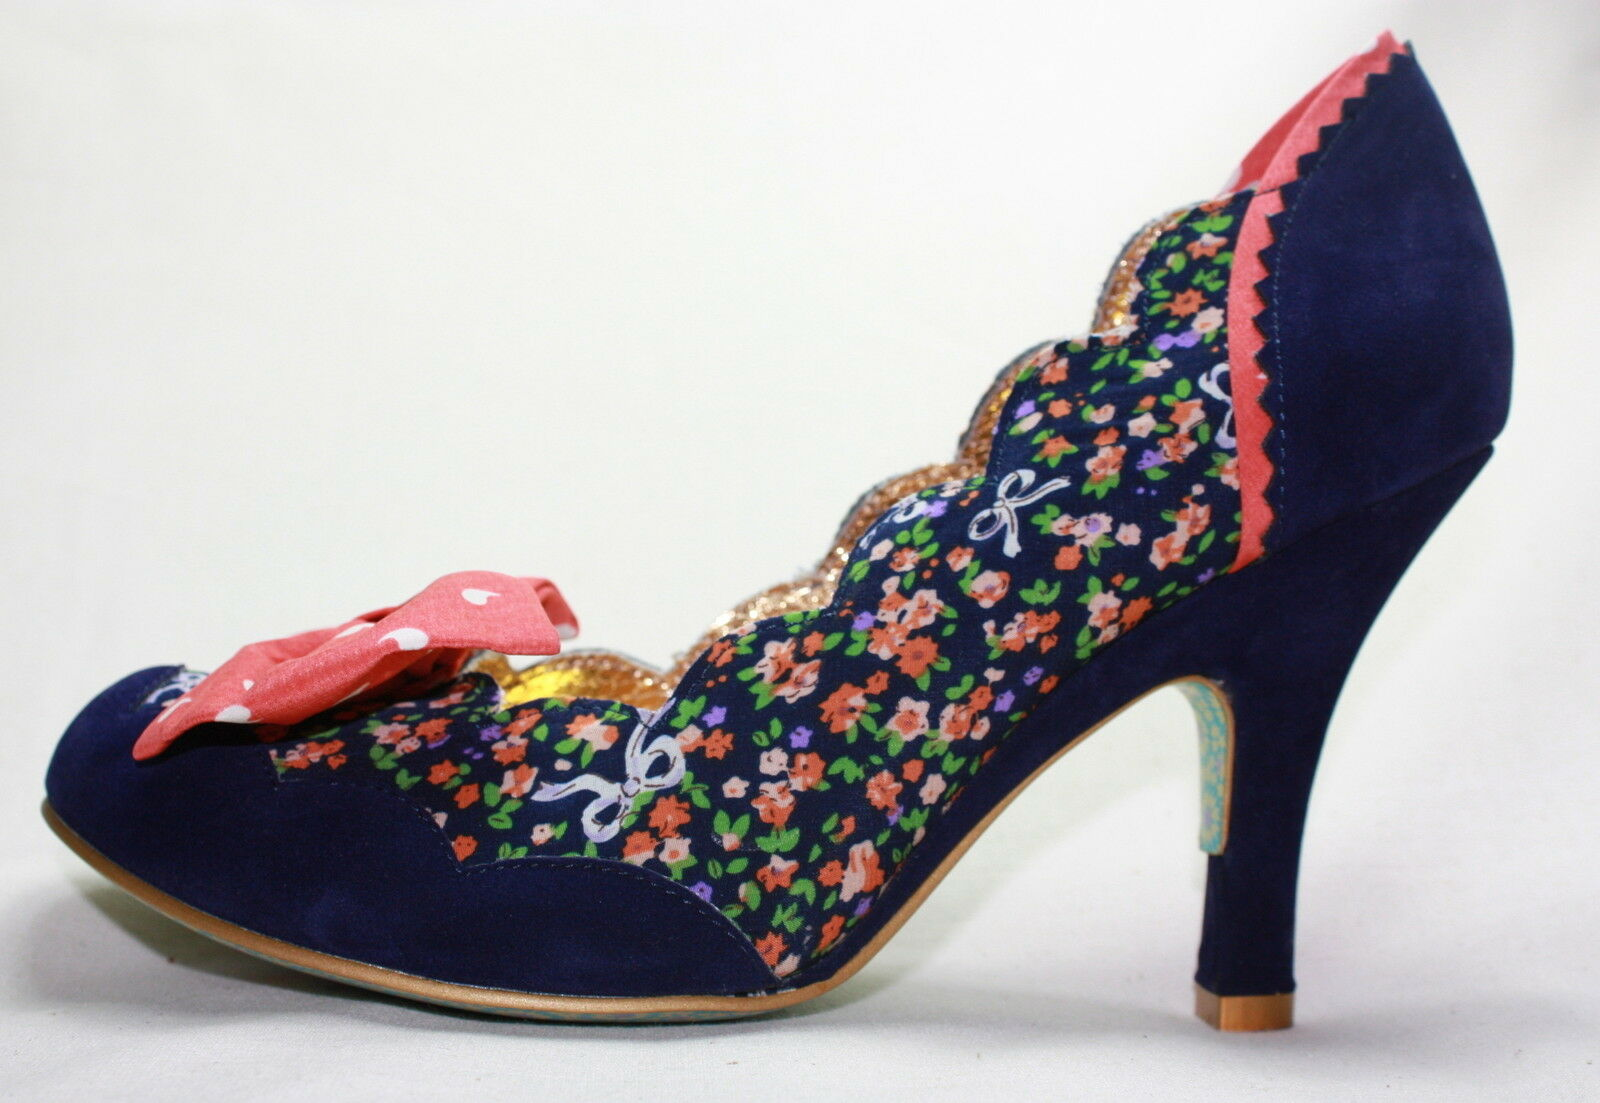 IRREGULAR IRREGULAR IRREGULAR CHOICE Pumps >> Beach Trip << 7d164d